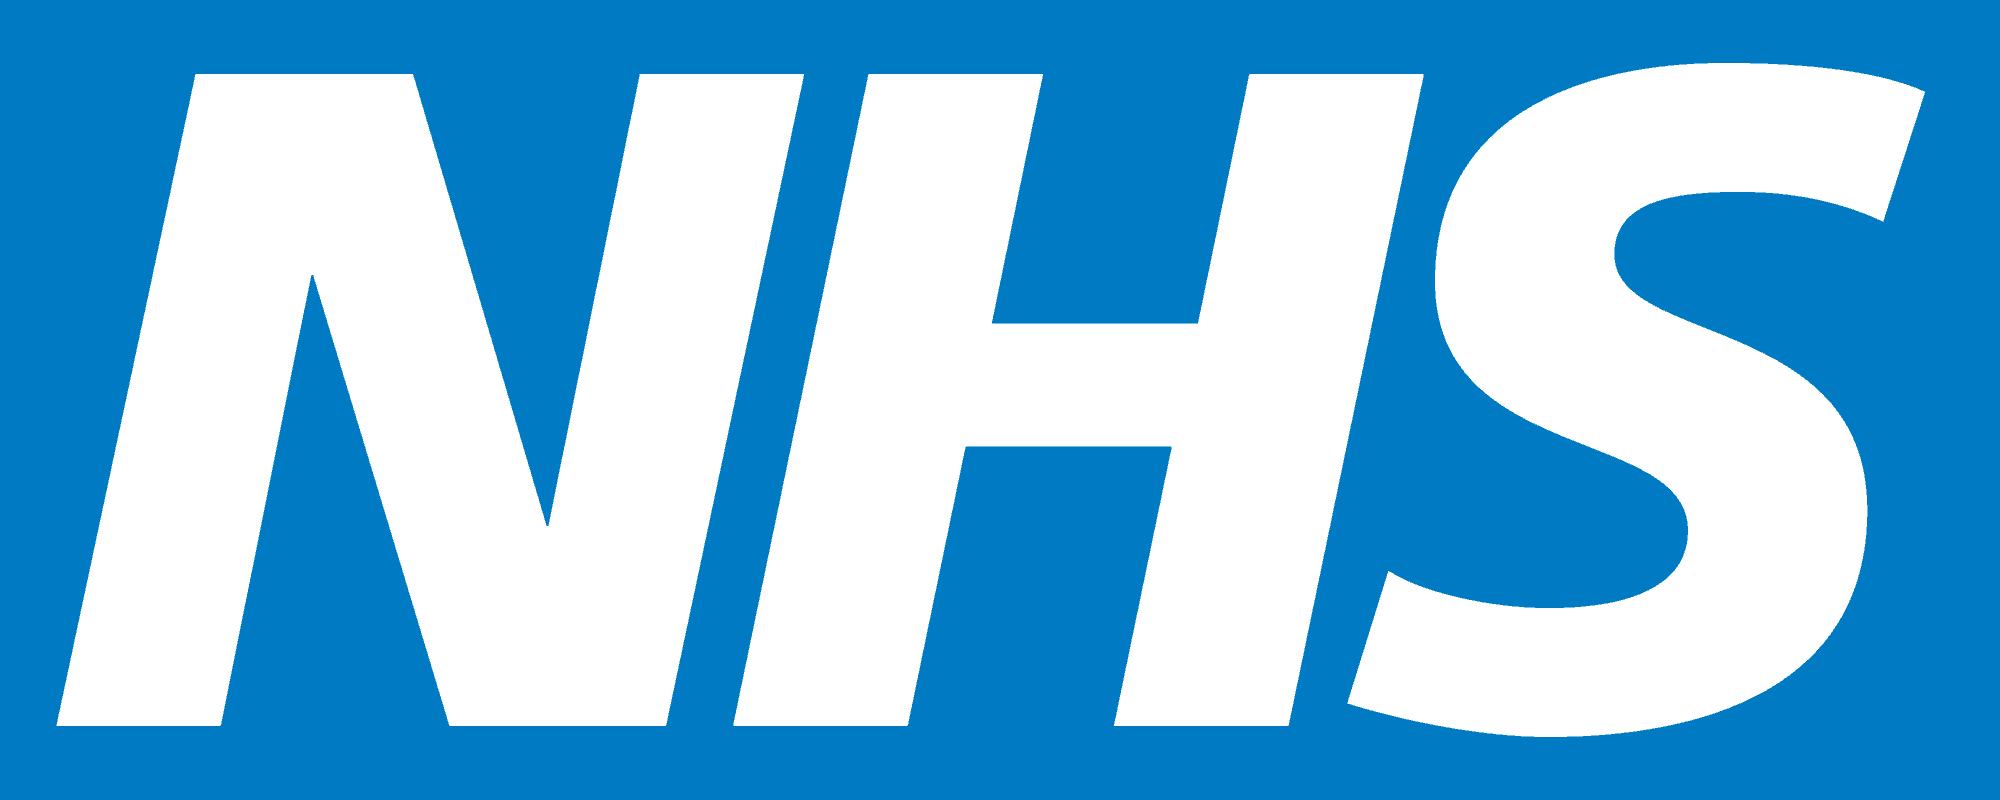 NHS colour